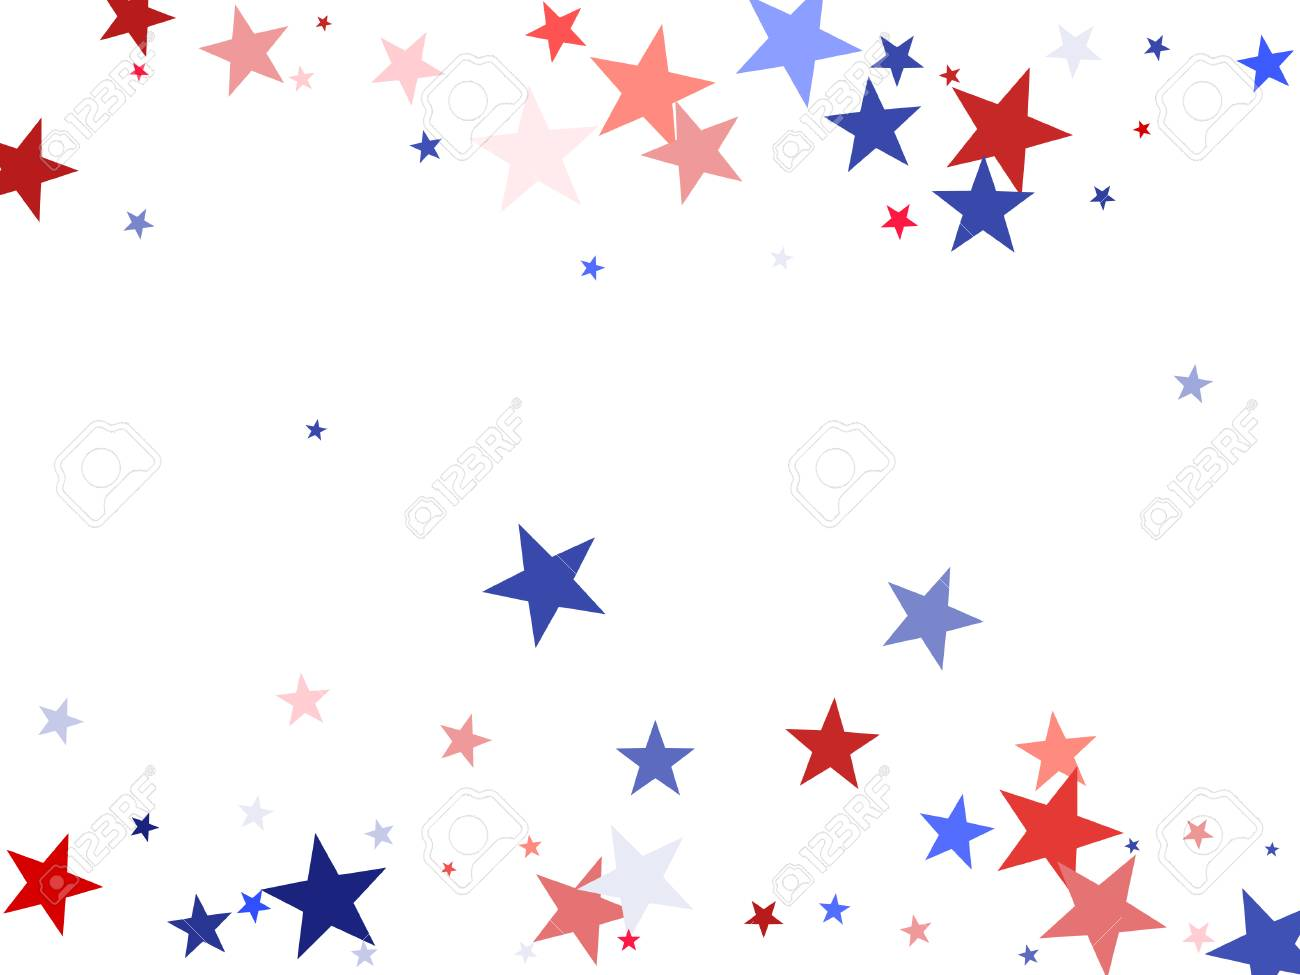 a648d09d713 American President Day background with stars. Holiday confetti in USA flag  colors for President Day